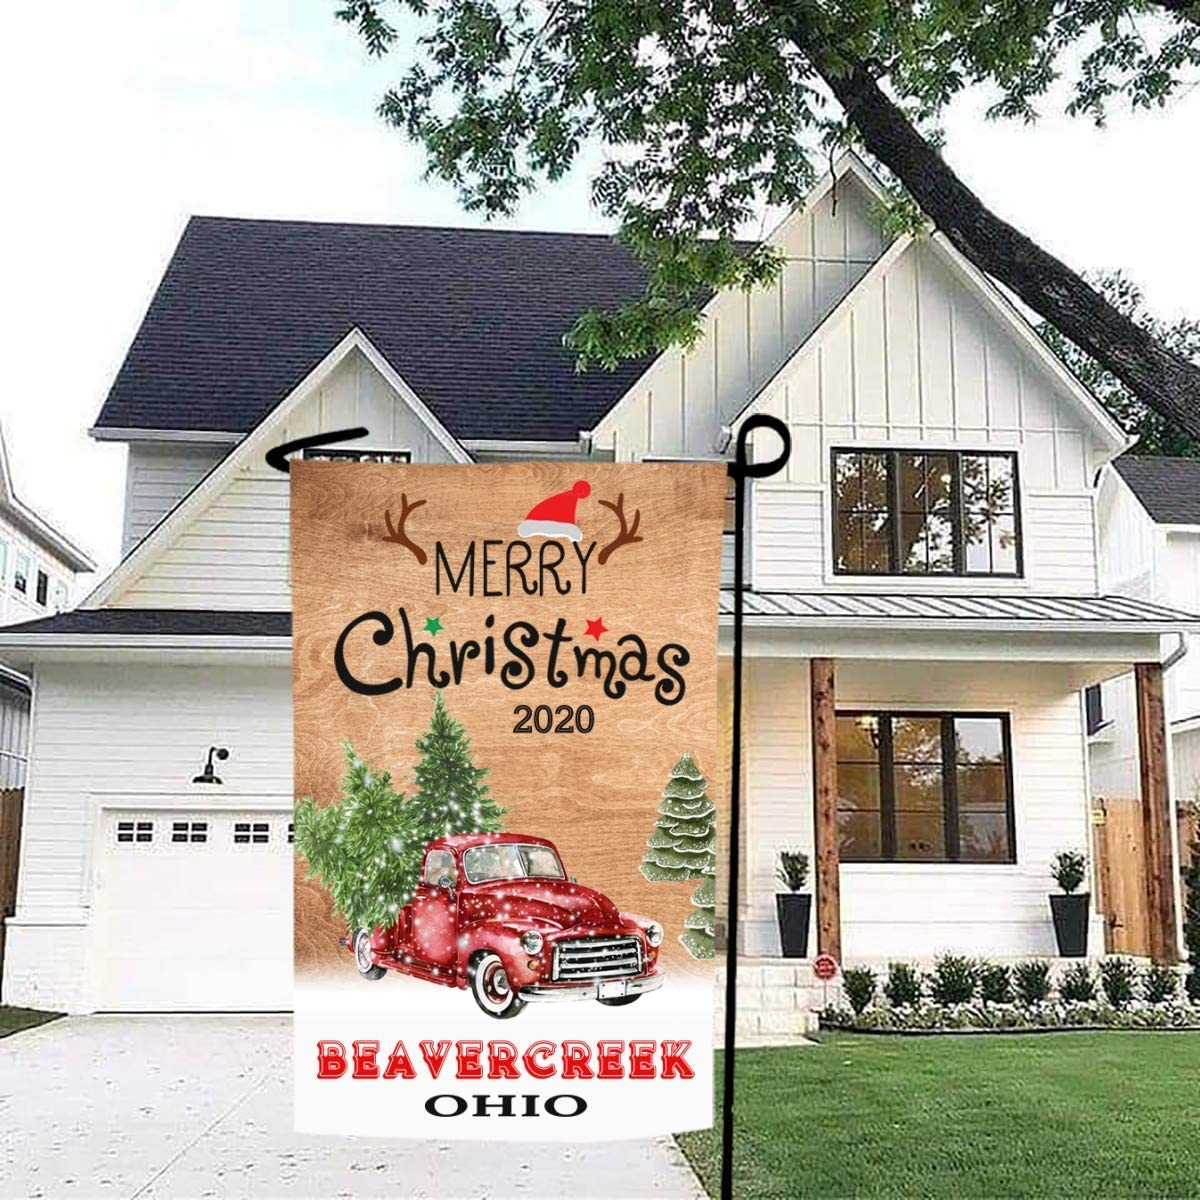 Merry Christmas Garden Flag Red Truck 2020 Beavercreek Ohio State - Rustic Winter Garden Yard Decorations, Outdoor Flag 12x18 Inch Double-Sided for Home, Garden (Not Included Stand)